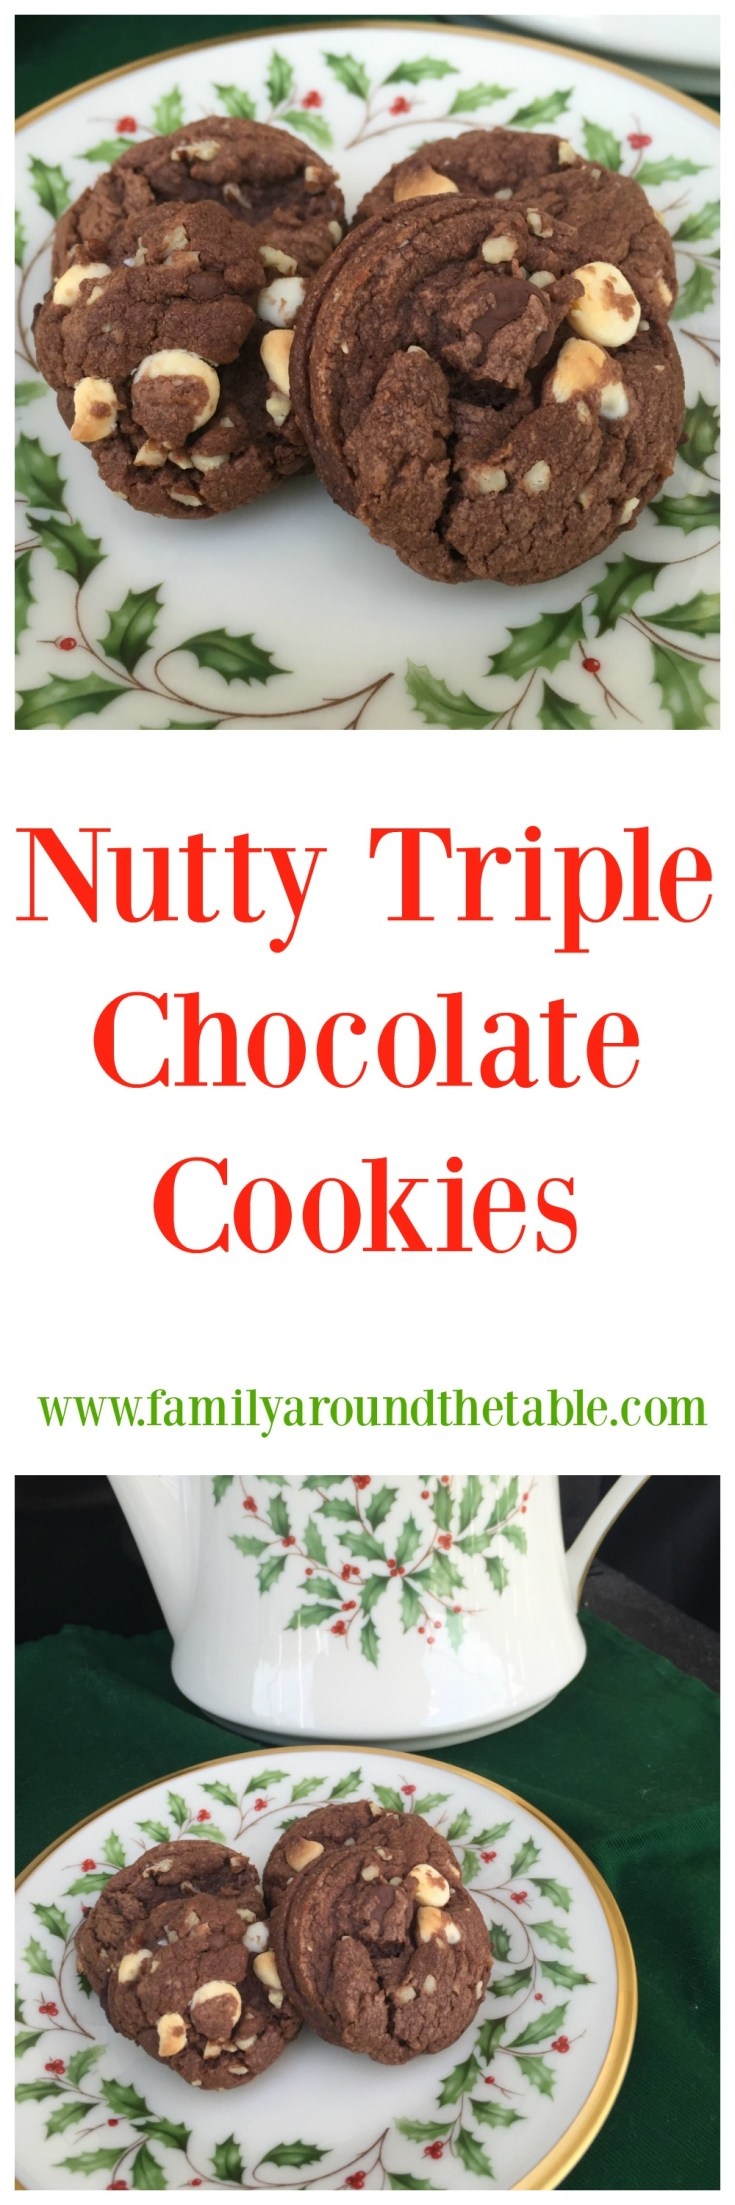 Put these nutty triple chocolate cookies on your holiday cookie tray.